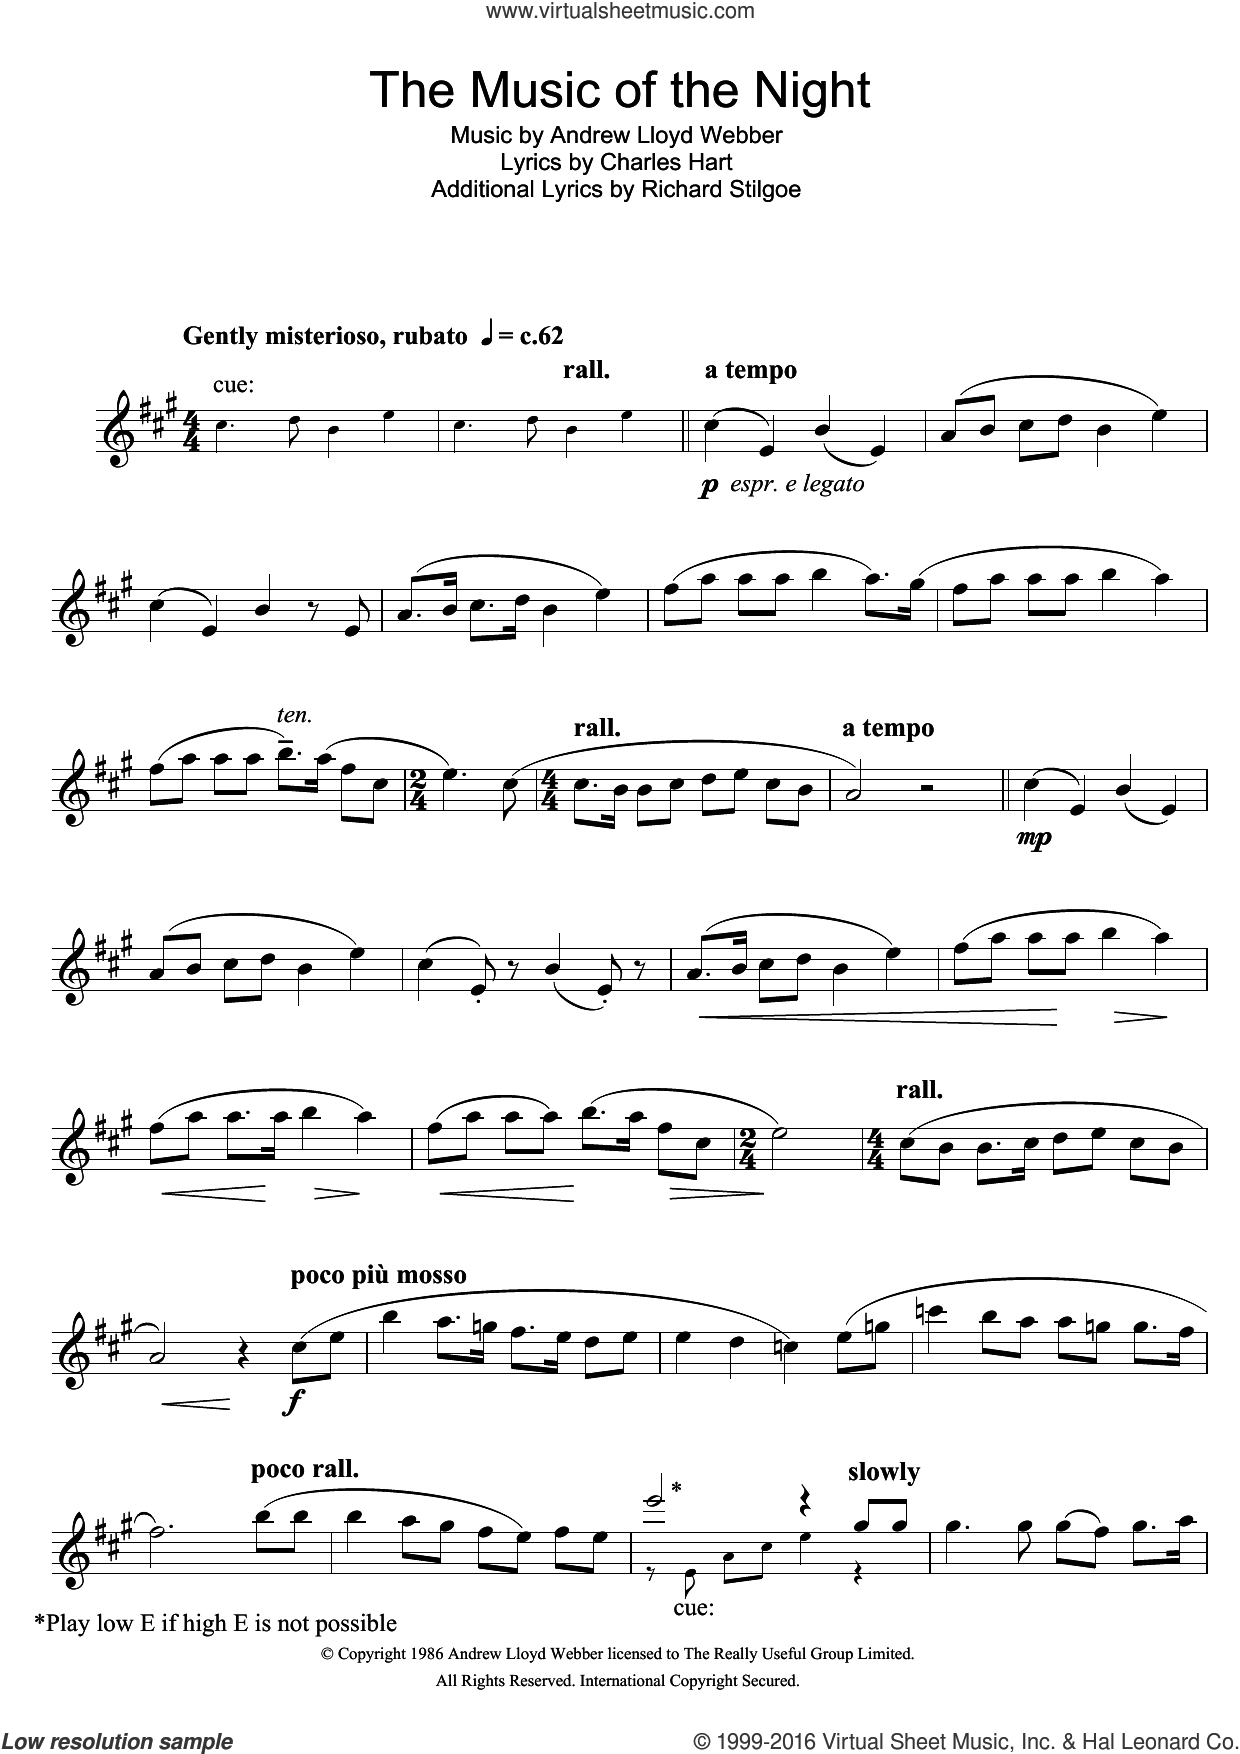 The Music Of The Night (from The Phantom Of The Opera) sheet music for alto saxophone solo by Andrew Lloyd Webber, Charles Hart and Richard Stilgoe, intermediate skill level